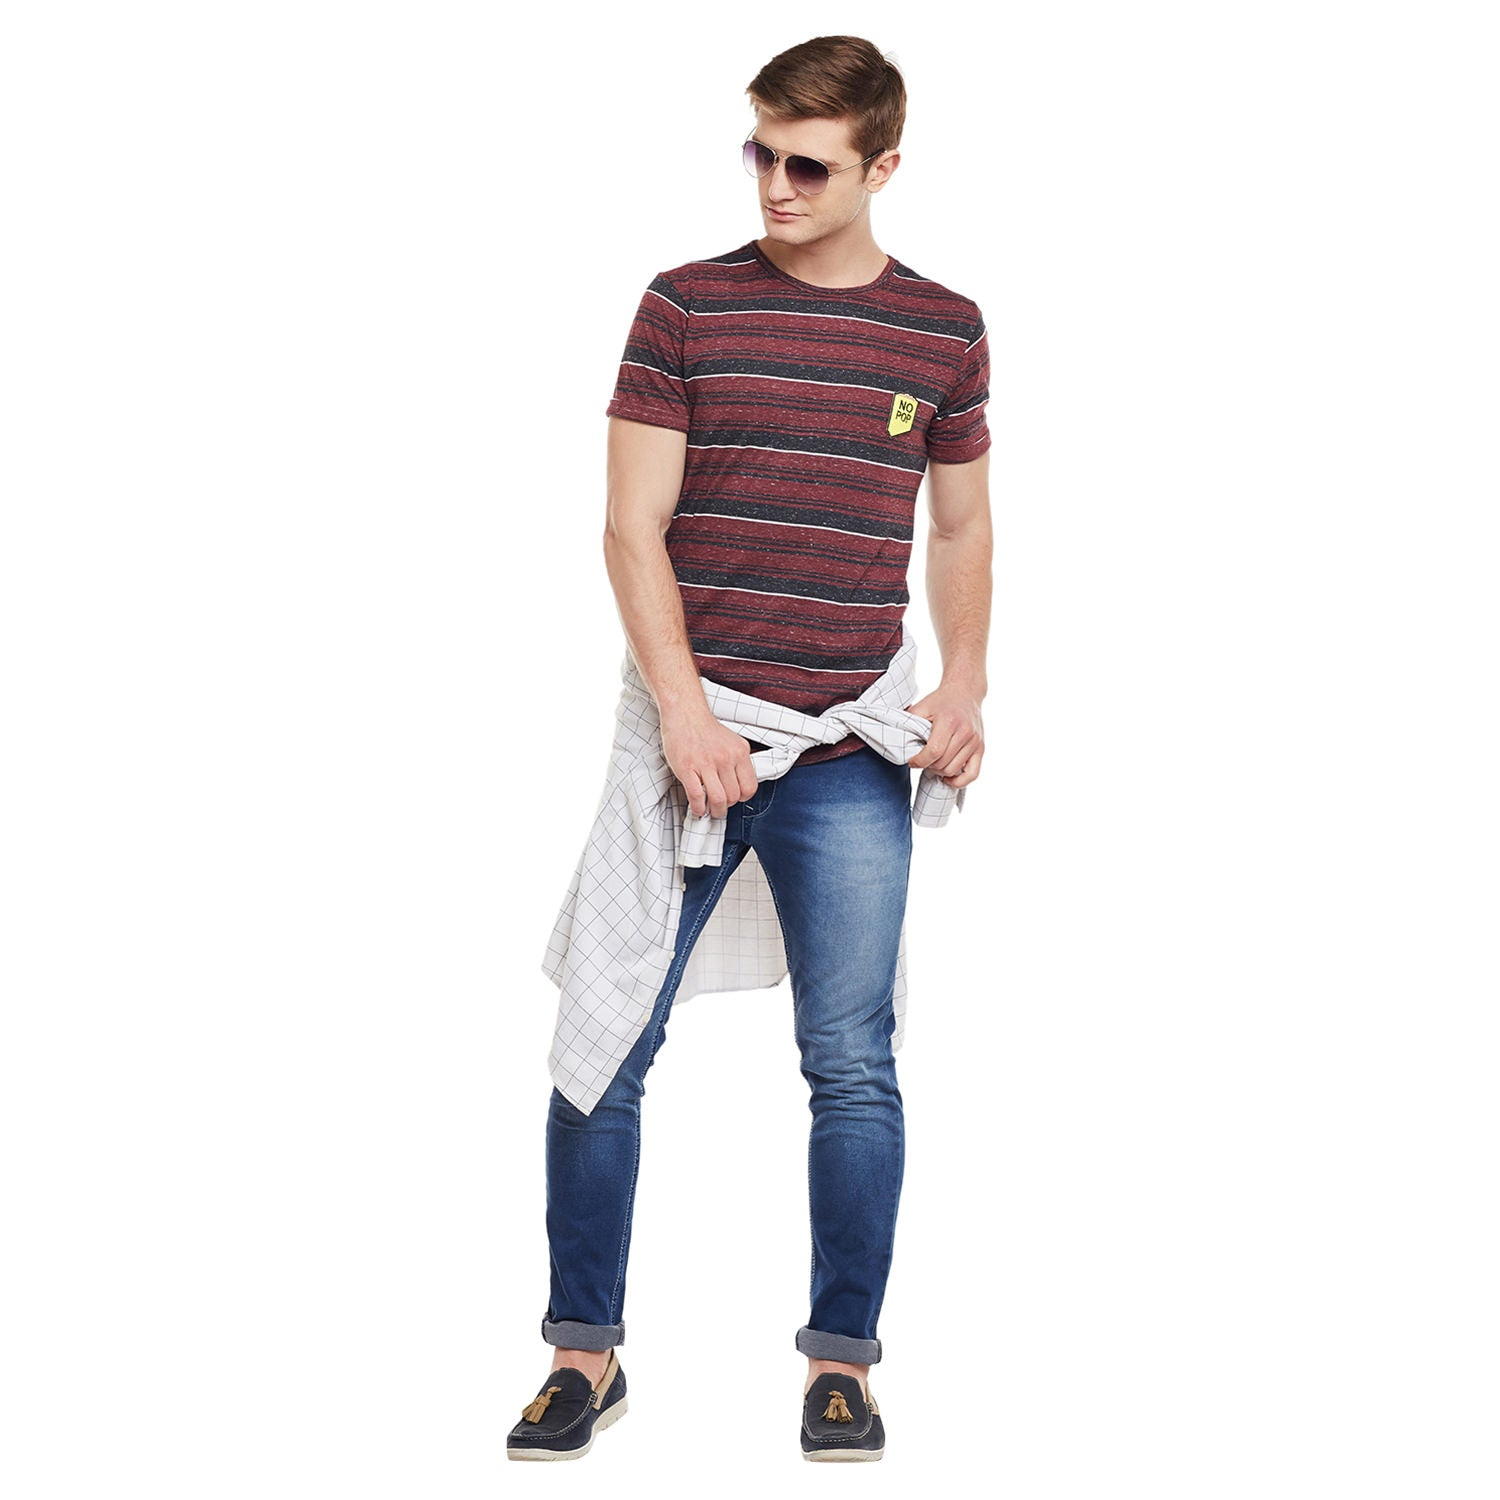 Atorse Mens Red And Black Striper Cotton T-Shirt With Regular Fit